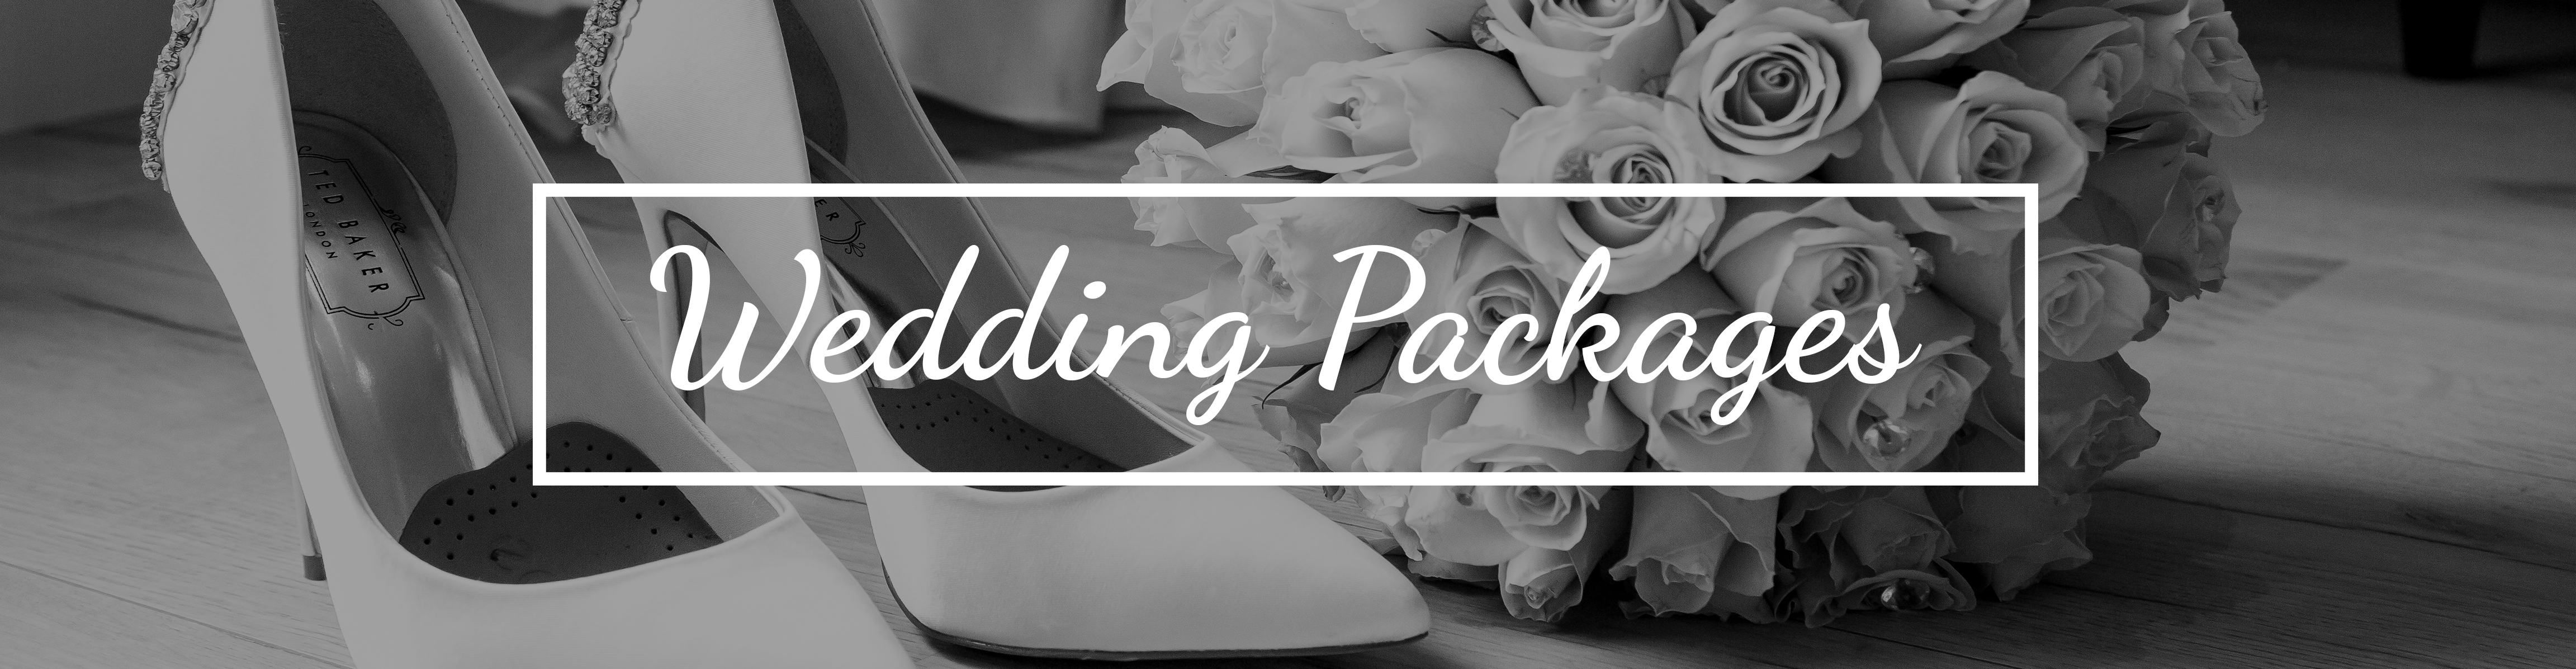 Make Your Special Day Even More Memorable With Affordable Wedding Packages From A Touch Of Cl By Candlelite Customizing The Menu According To Guest